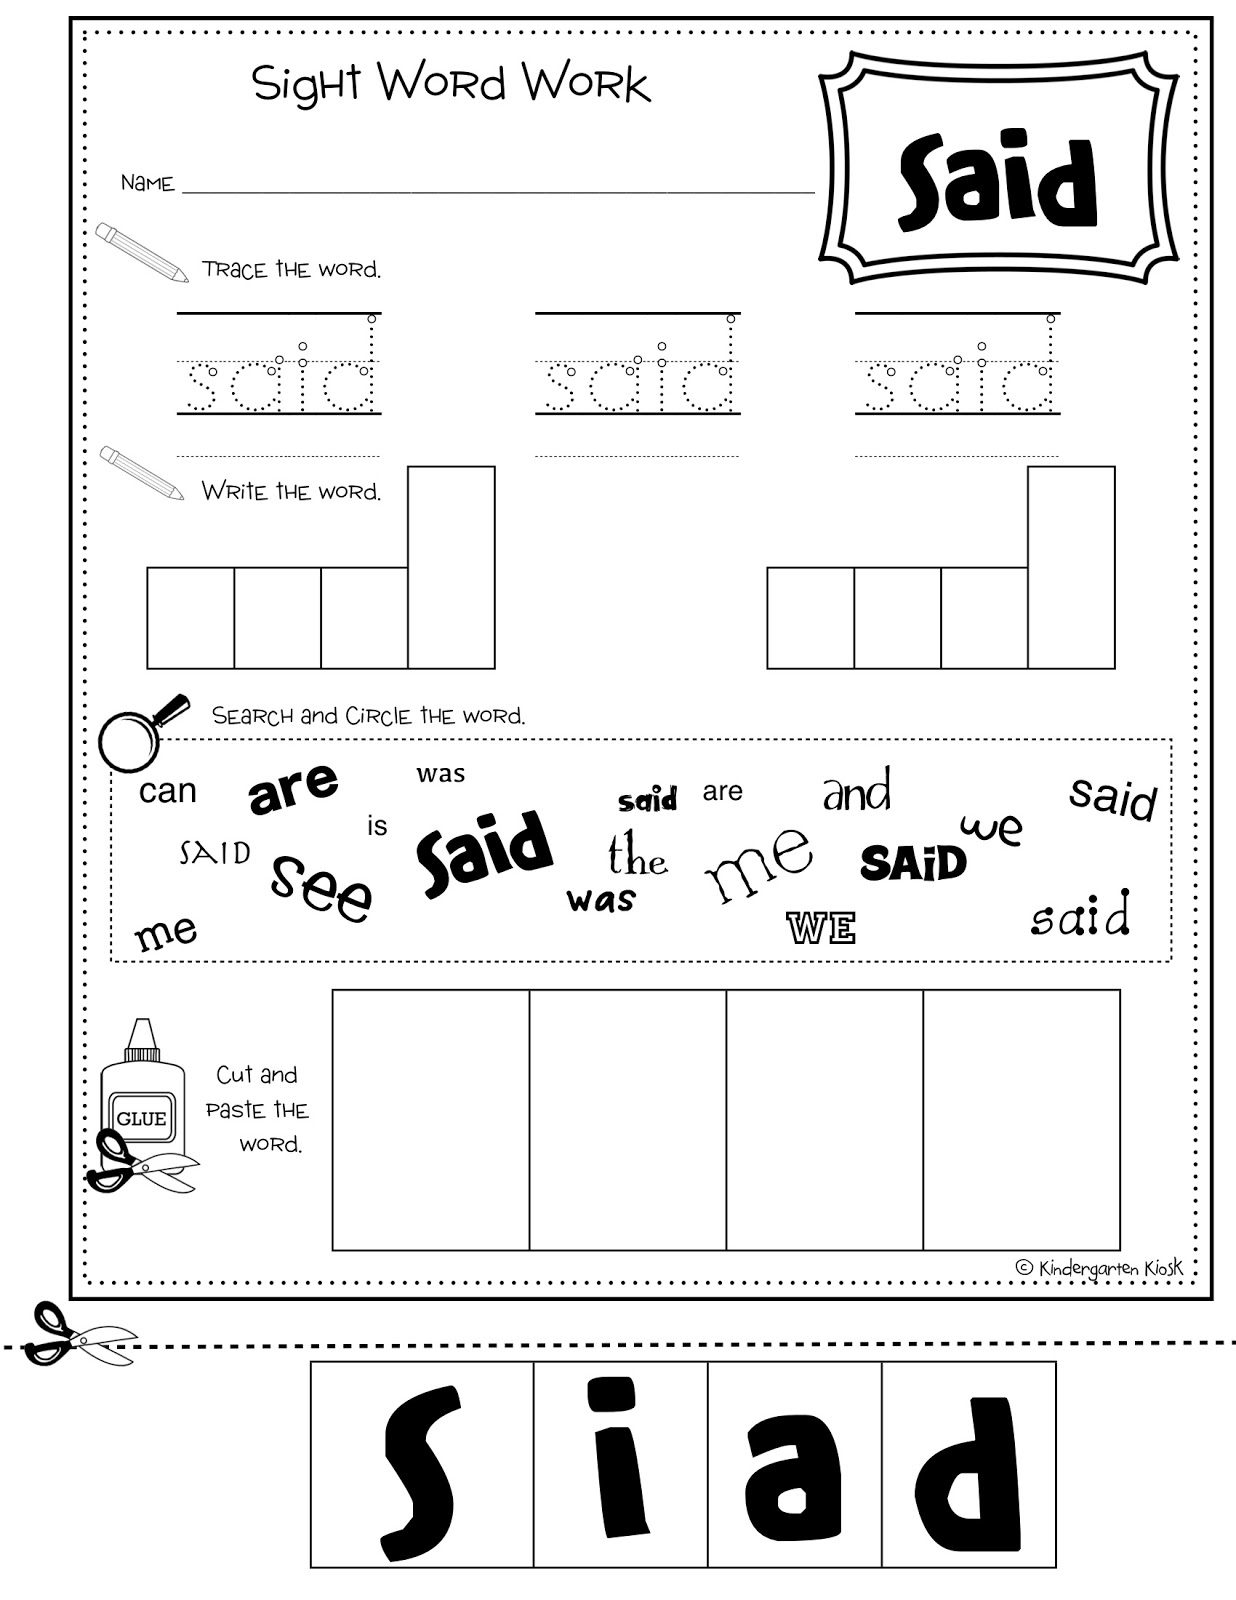 Multi Workbook Word Kiosk: word worksheet would Sight Task Kindergarten  sight